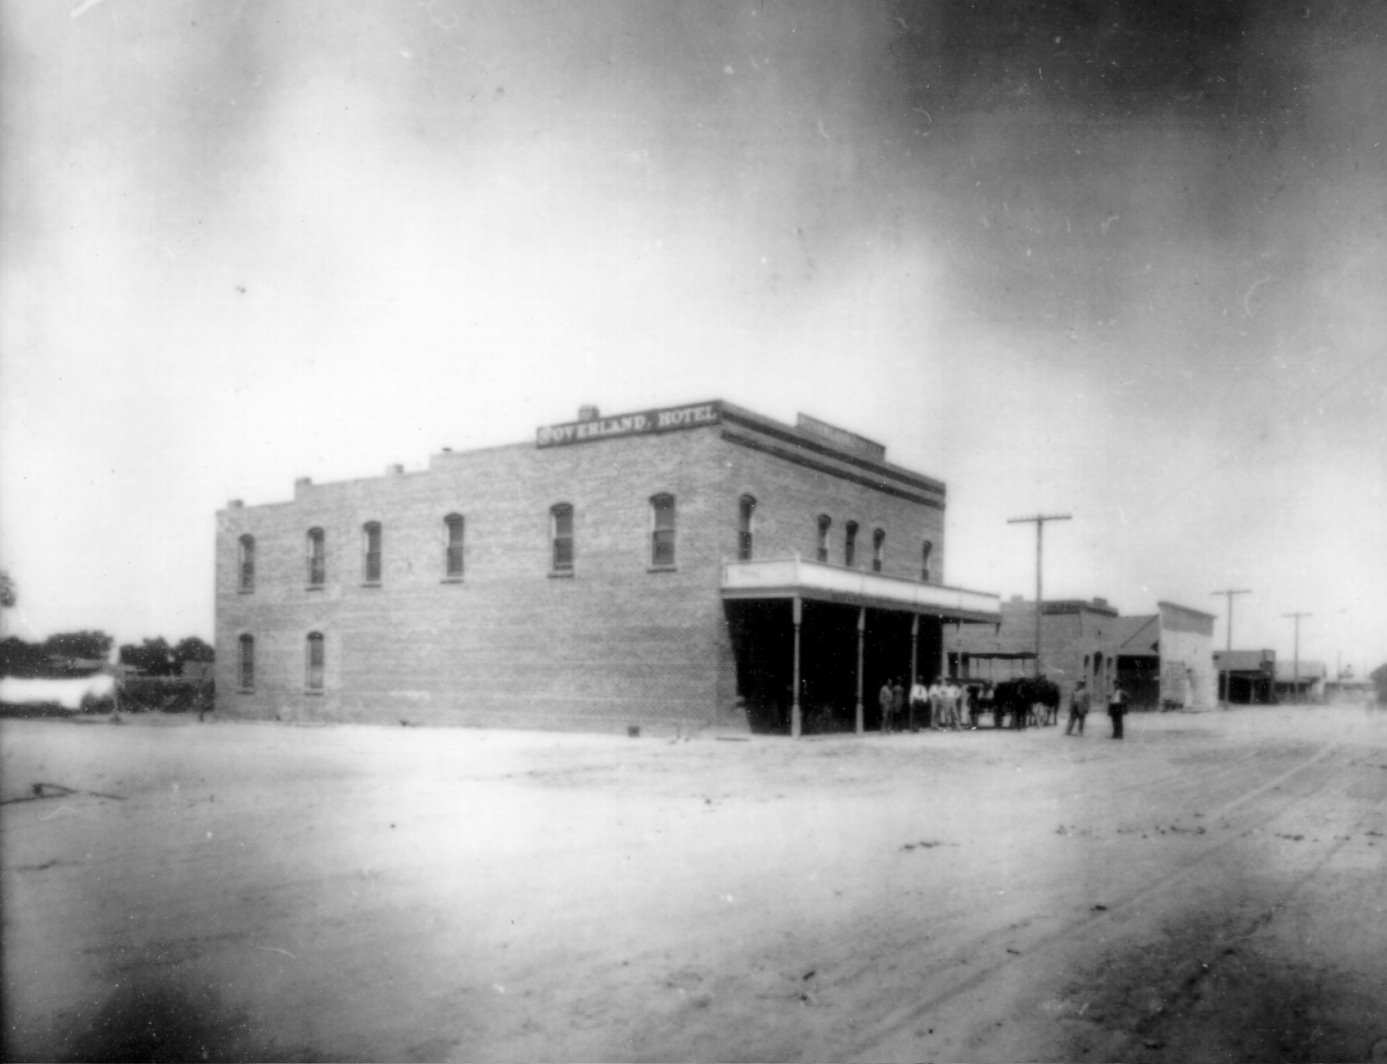 Overland Hotel in early 20th century.